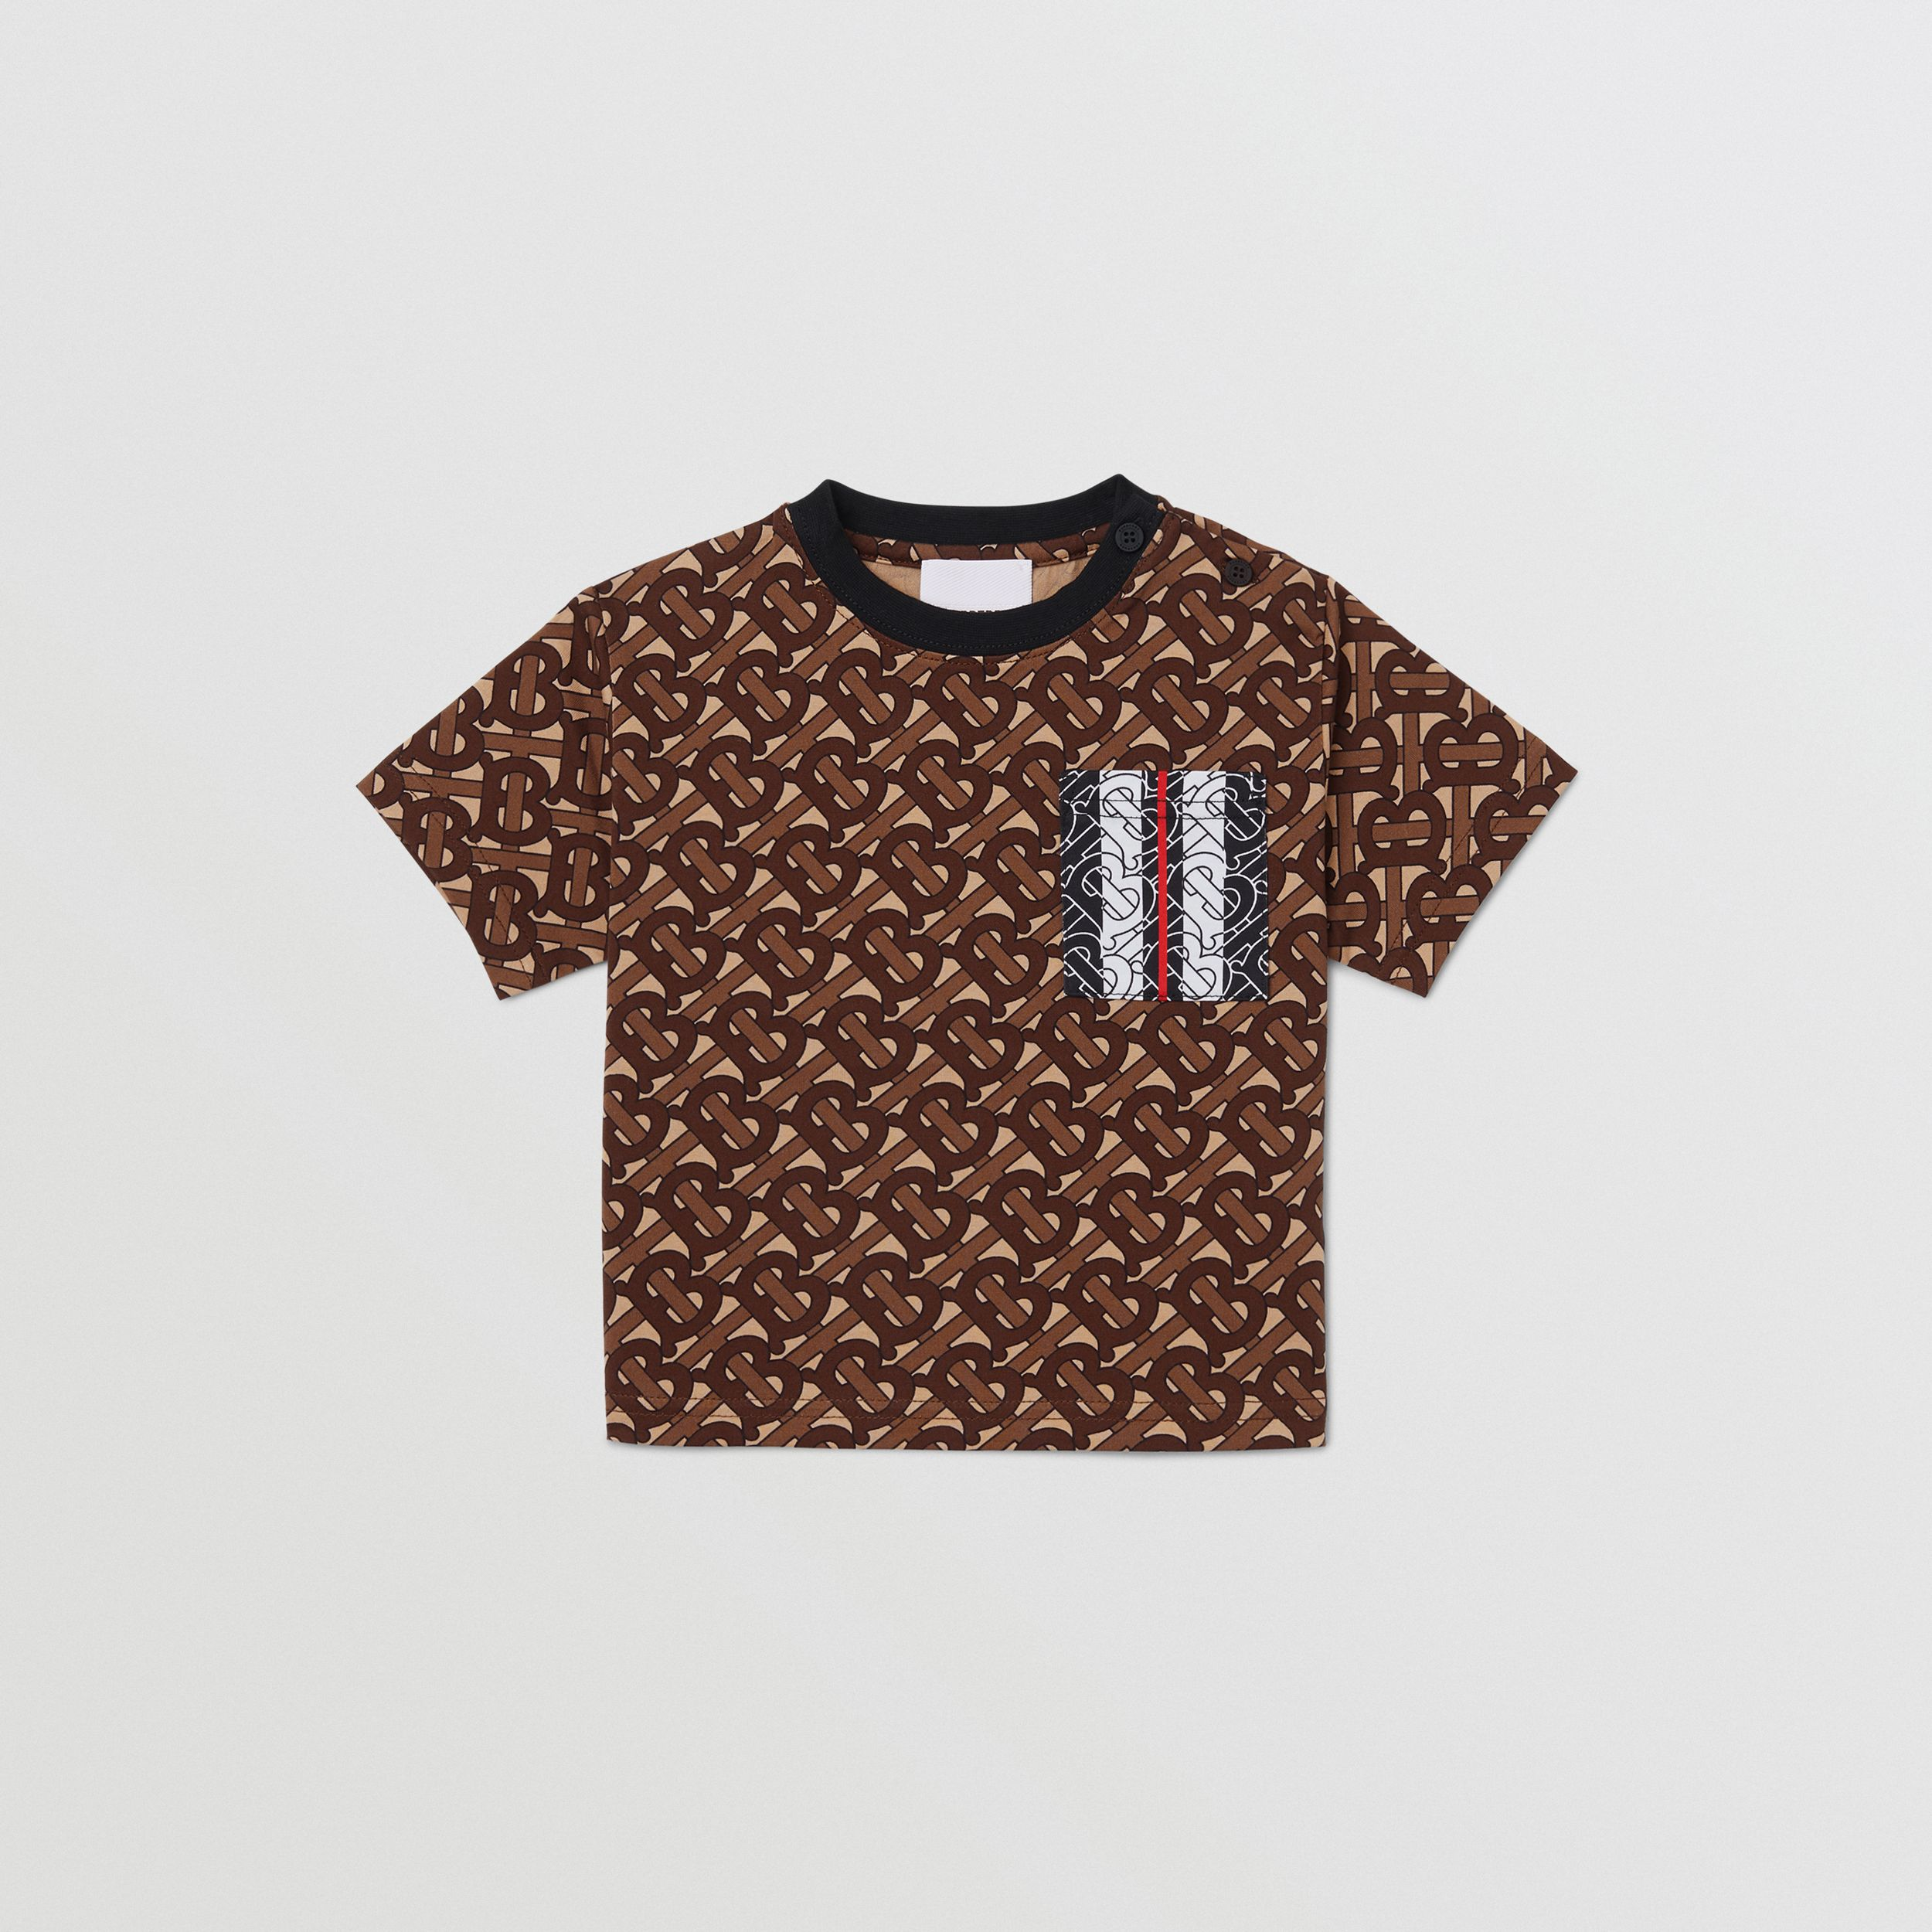 Monogram Stripe Print Cotton T-shirt in Bridle Brown - Children | Burberry Singapore - 1